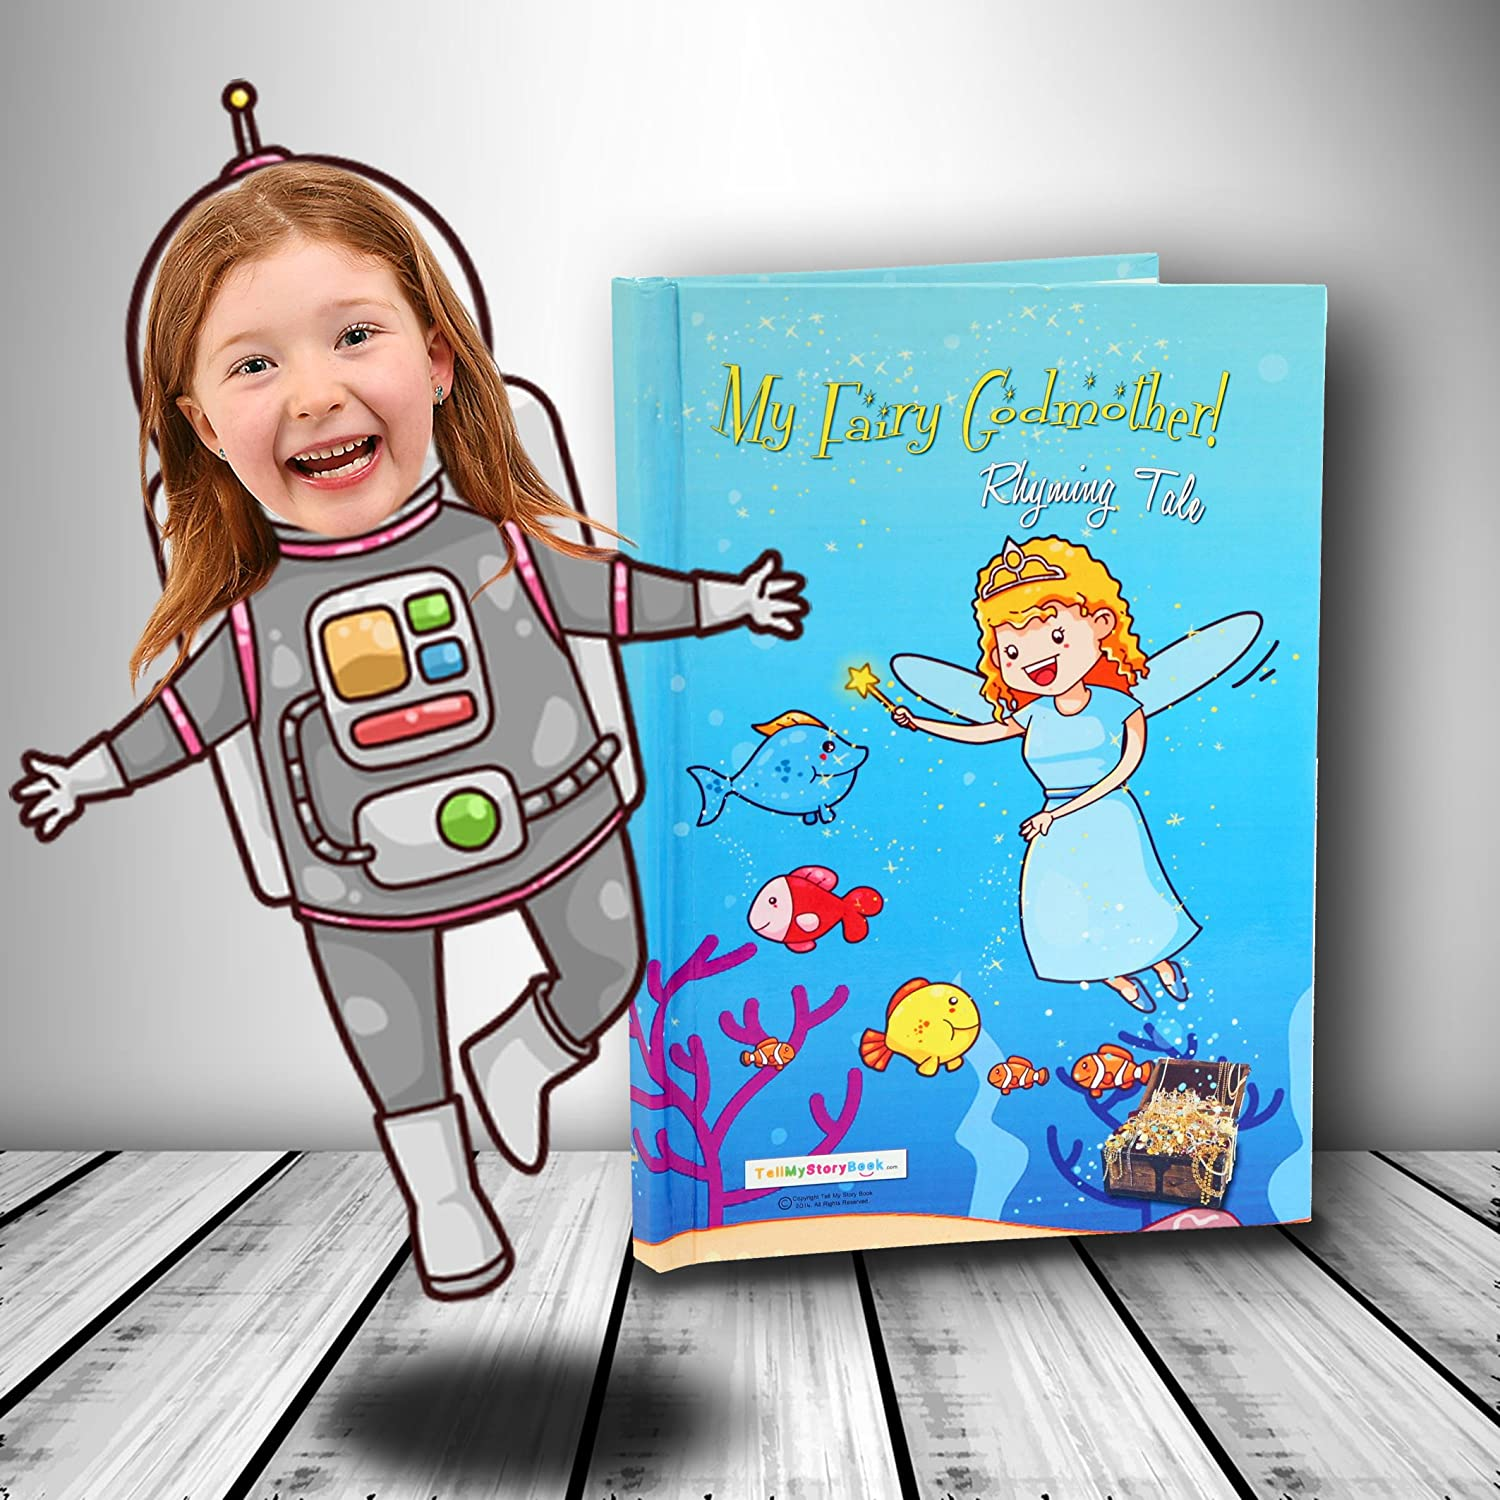 Hardback Personalised Children's Book using Your Child's Photo as the main character of the book! My FairyGodmother Tellmystorybook Ltd My Fairy Godmother